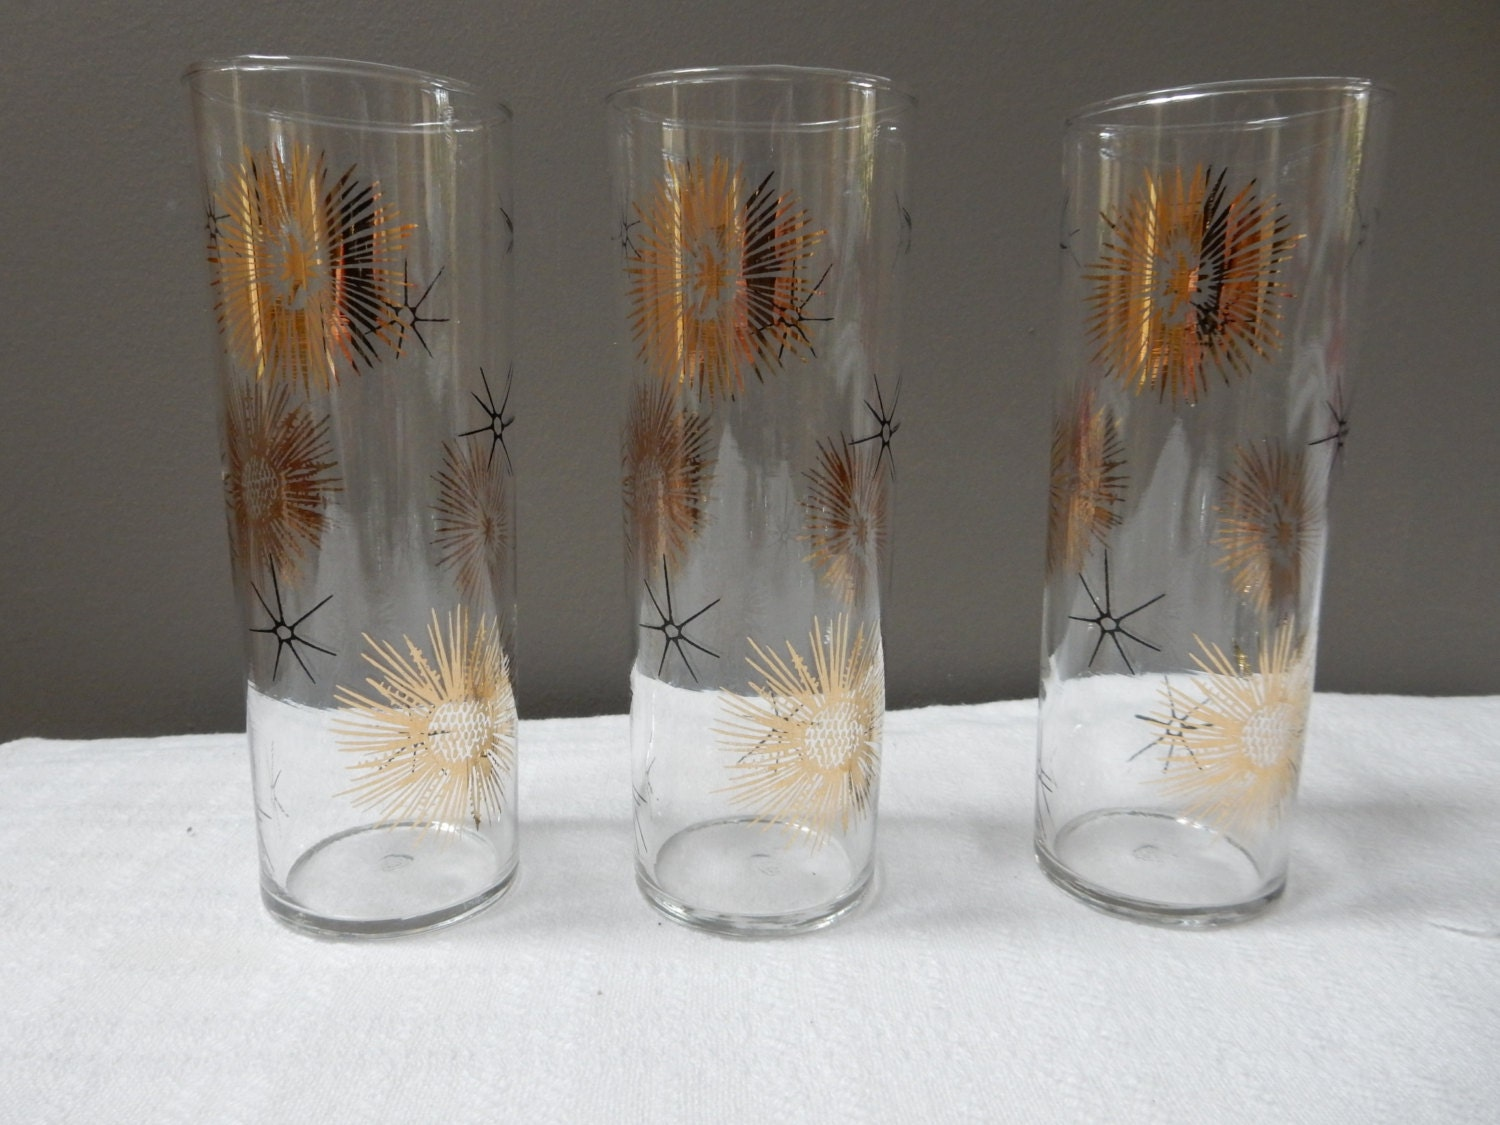 Atomic starburst glasses by notoveritvintage on etsy - Starburst glassware ...